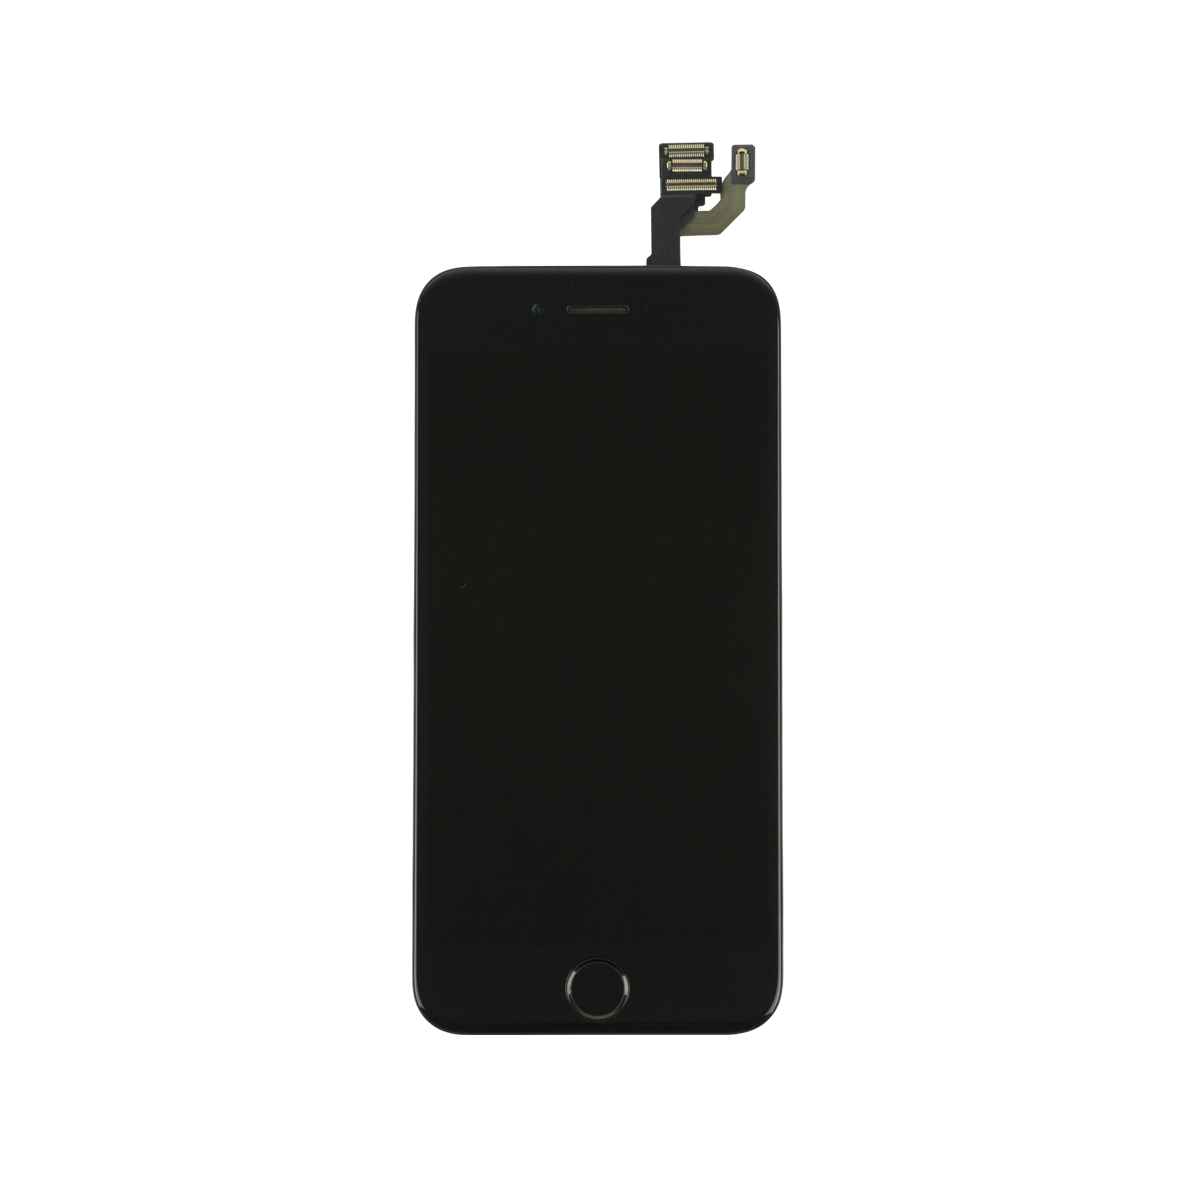 For Apple iPhone 6 6G - LCD Digitizer Touch Screen Complete Assembly - With Spear Parts - Black - Genuine OEM